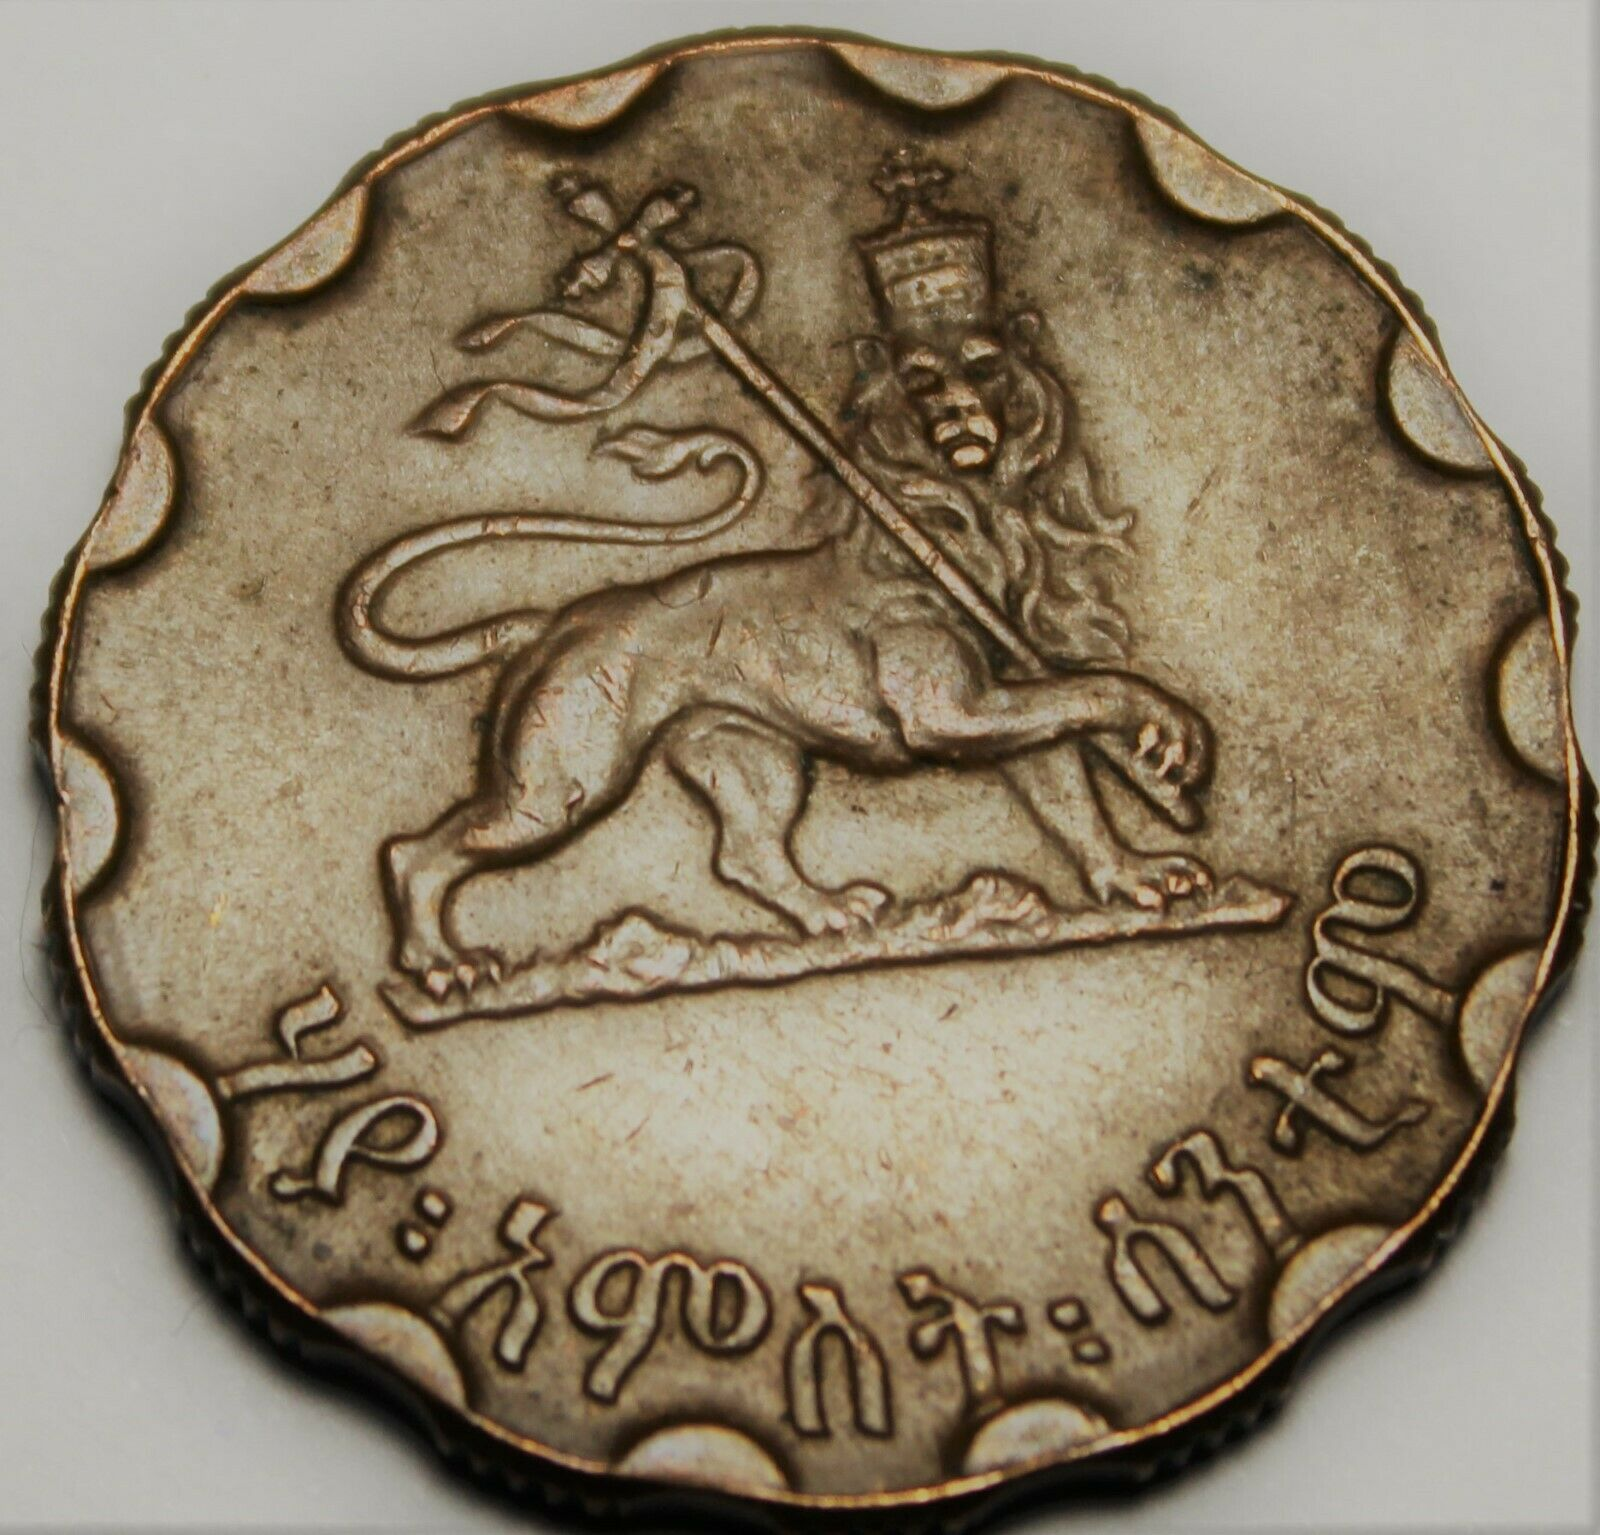 Primary image for Ethiopia 25 Cents, EE1936 (1943)~Scalloped Edge~LION With Cross